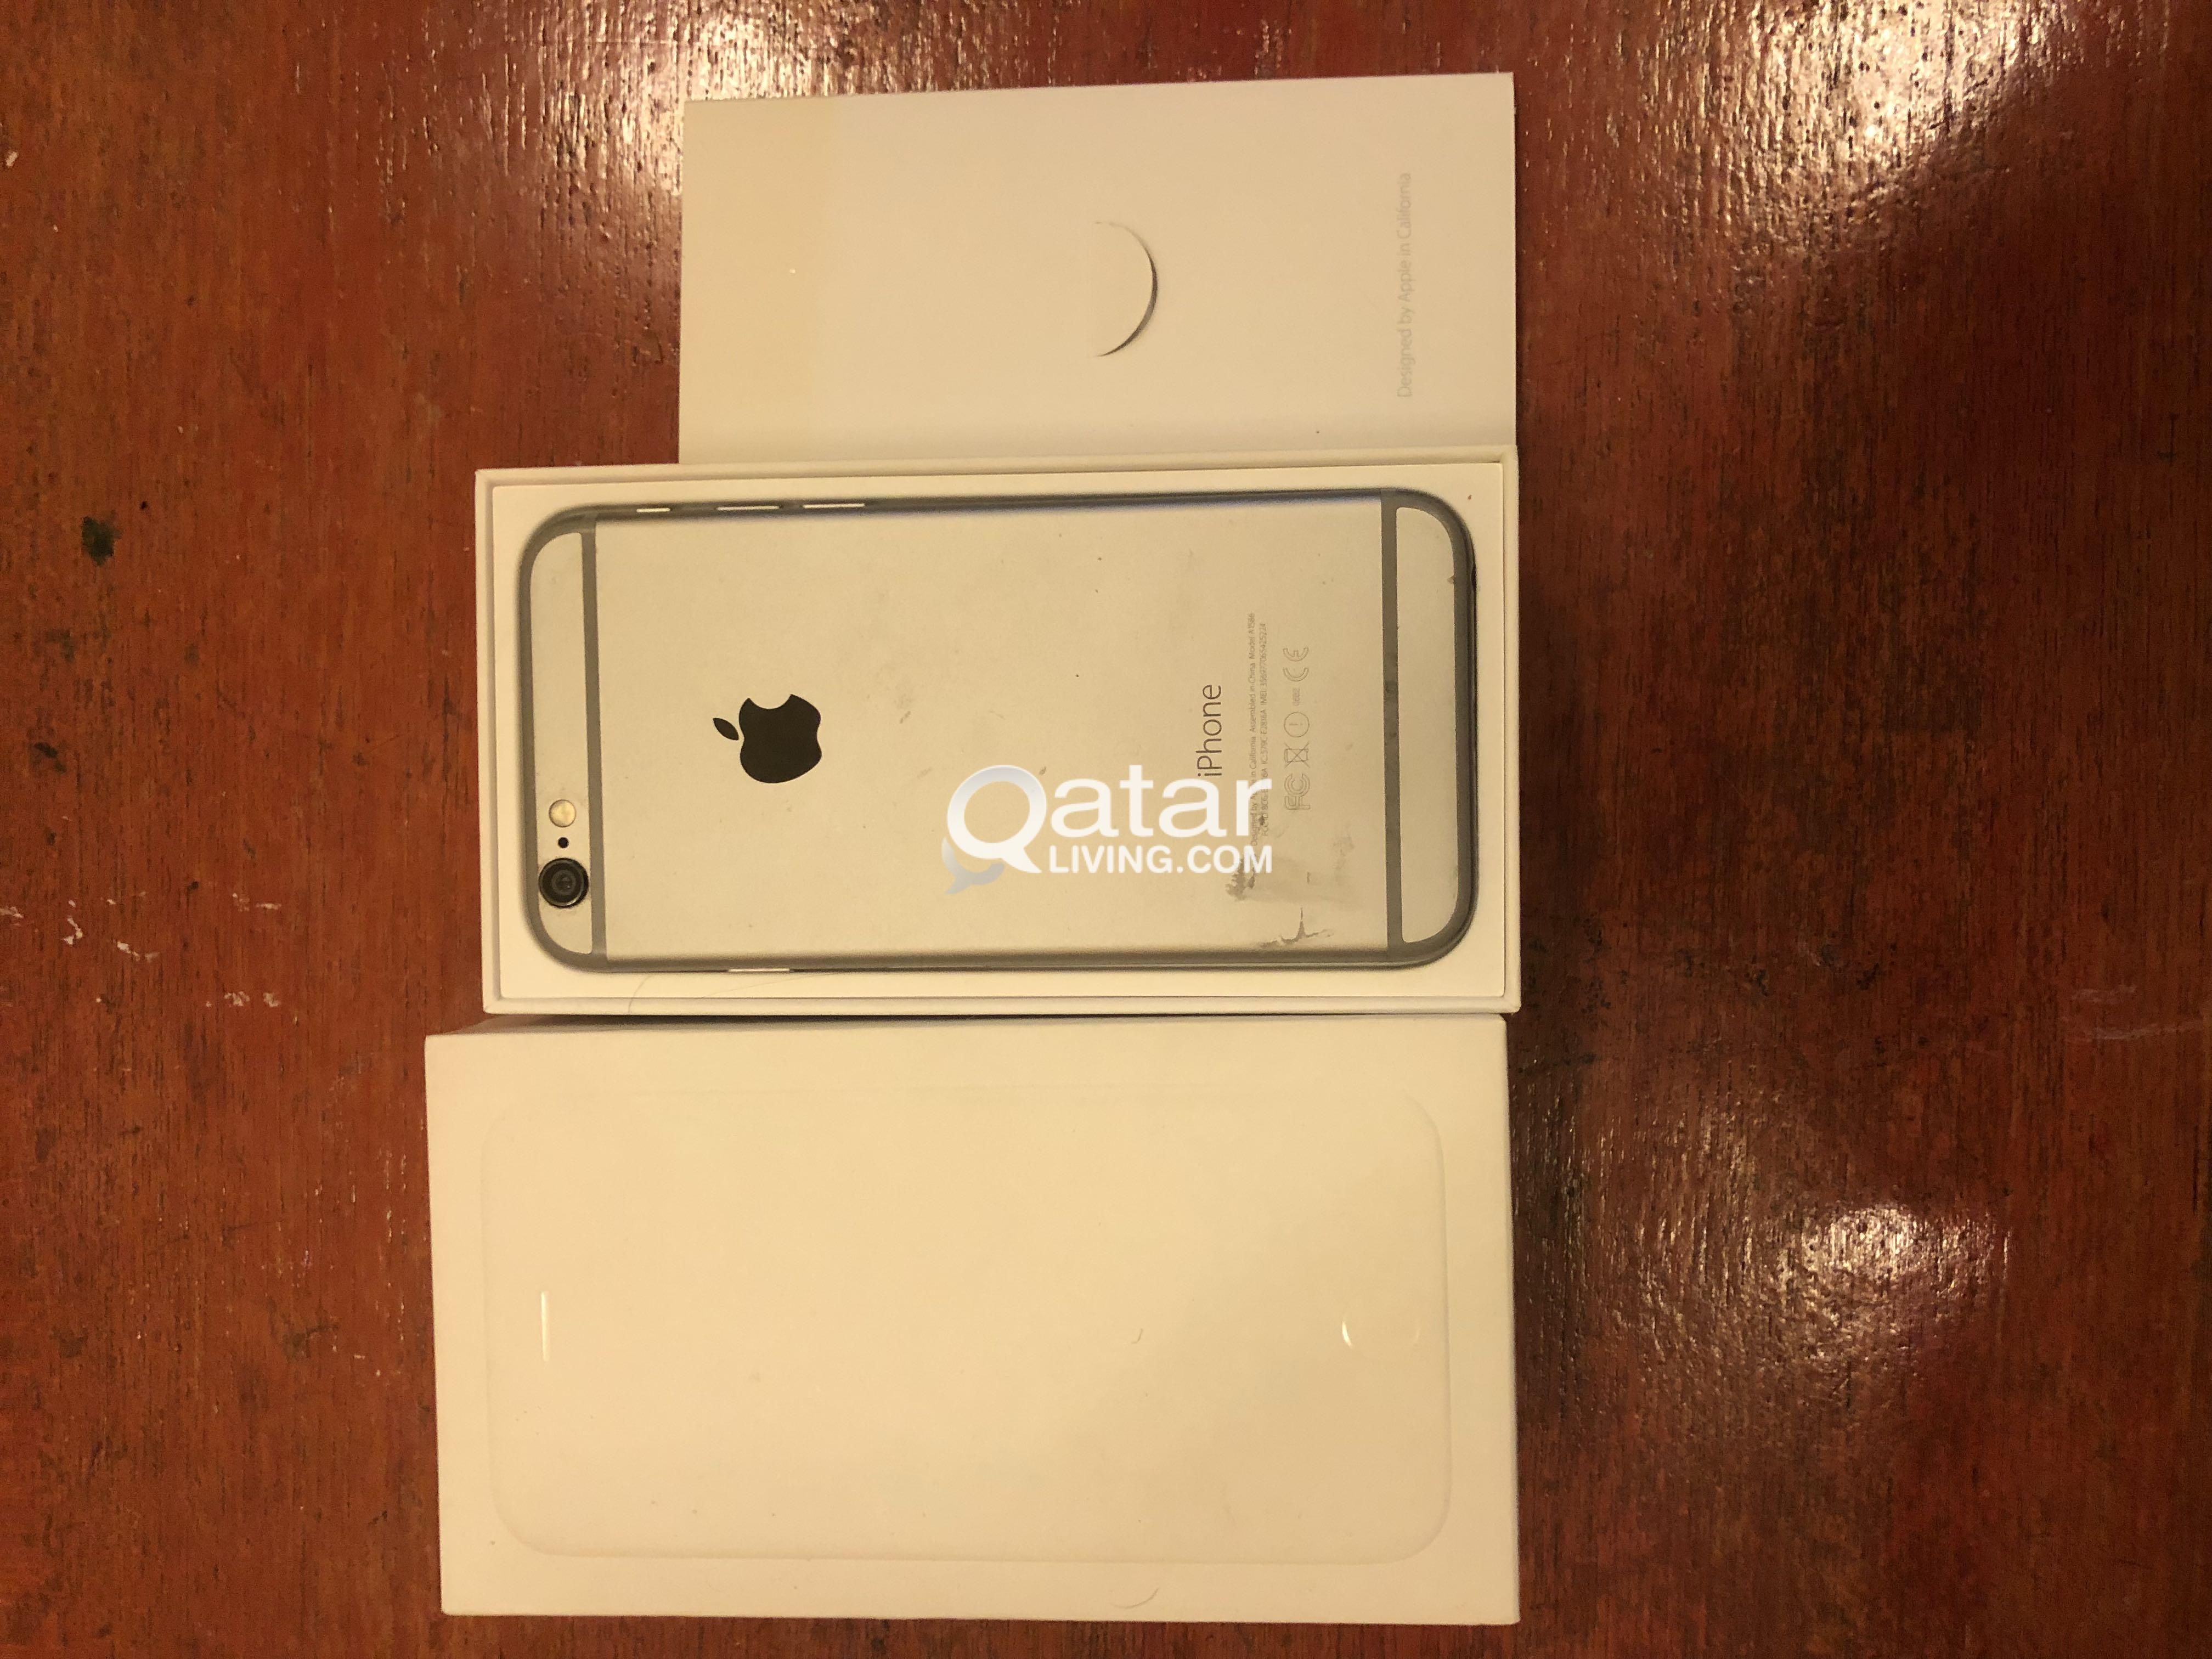 Iphone 6 64gb Space Gray Qatar Living Title